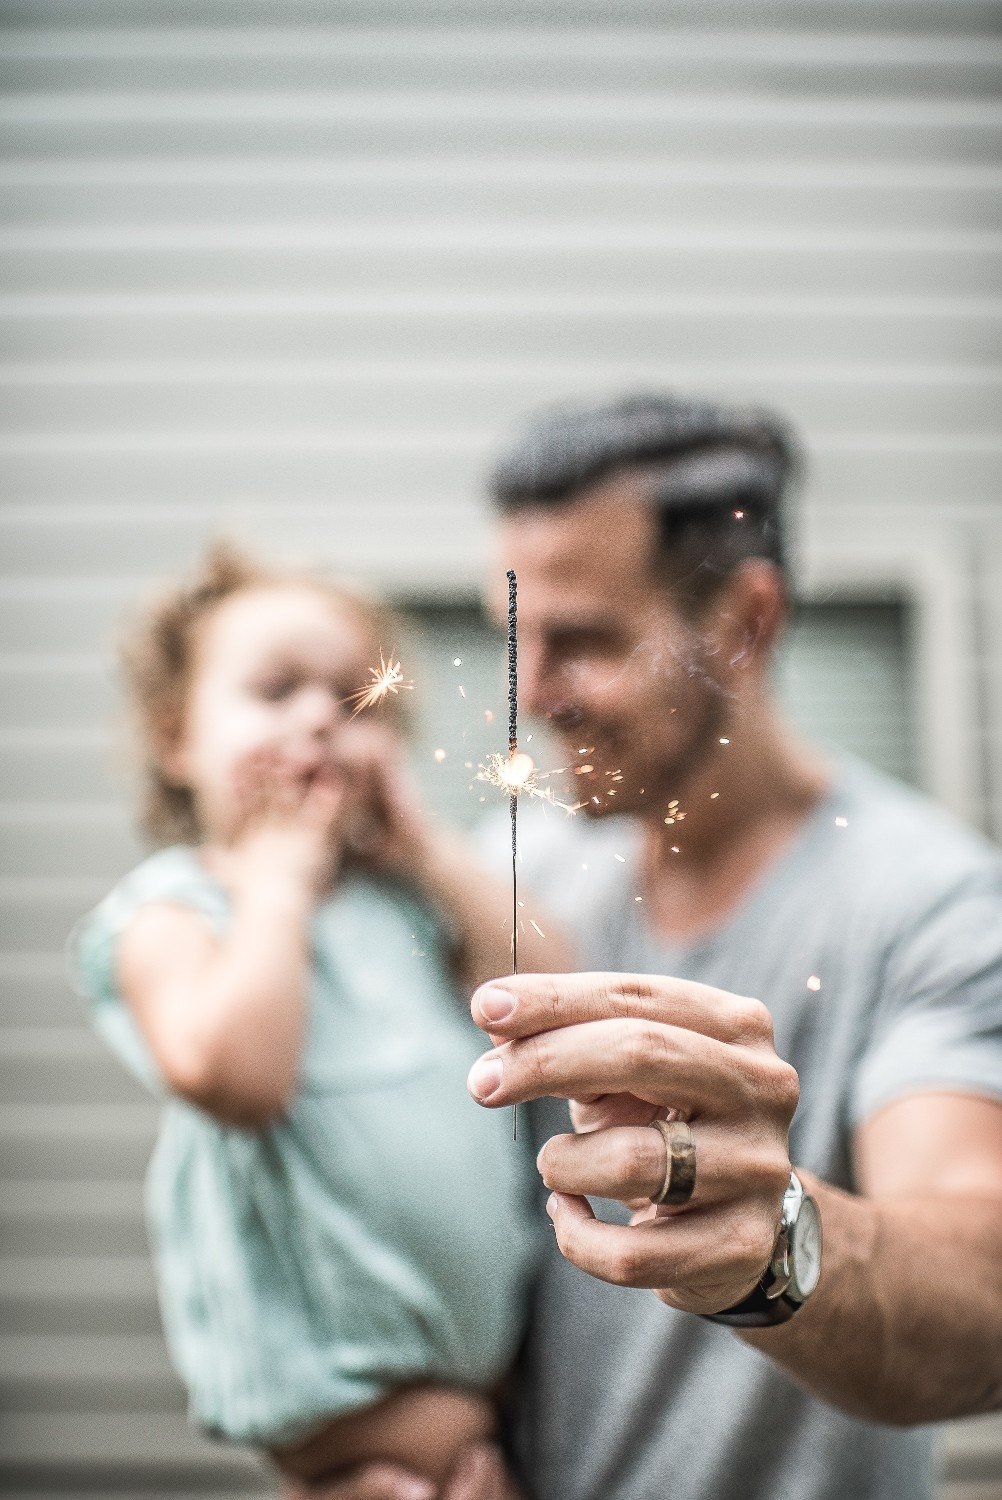 dad-with-girl-and-sparkler